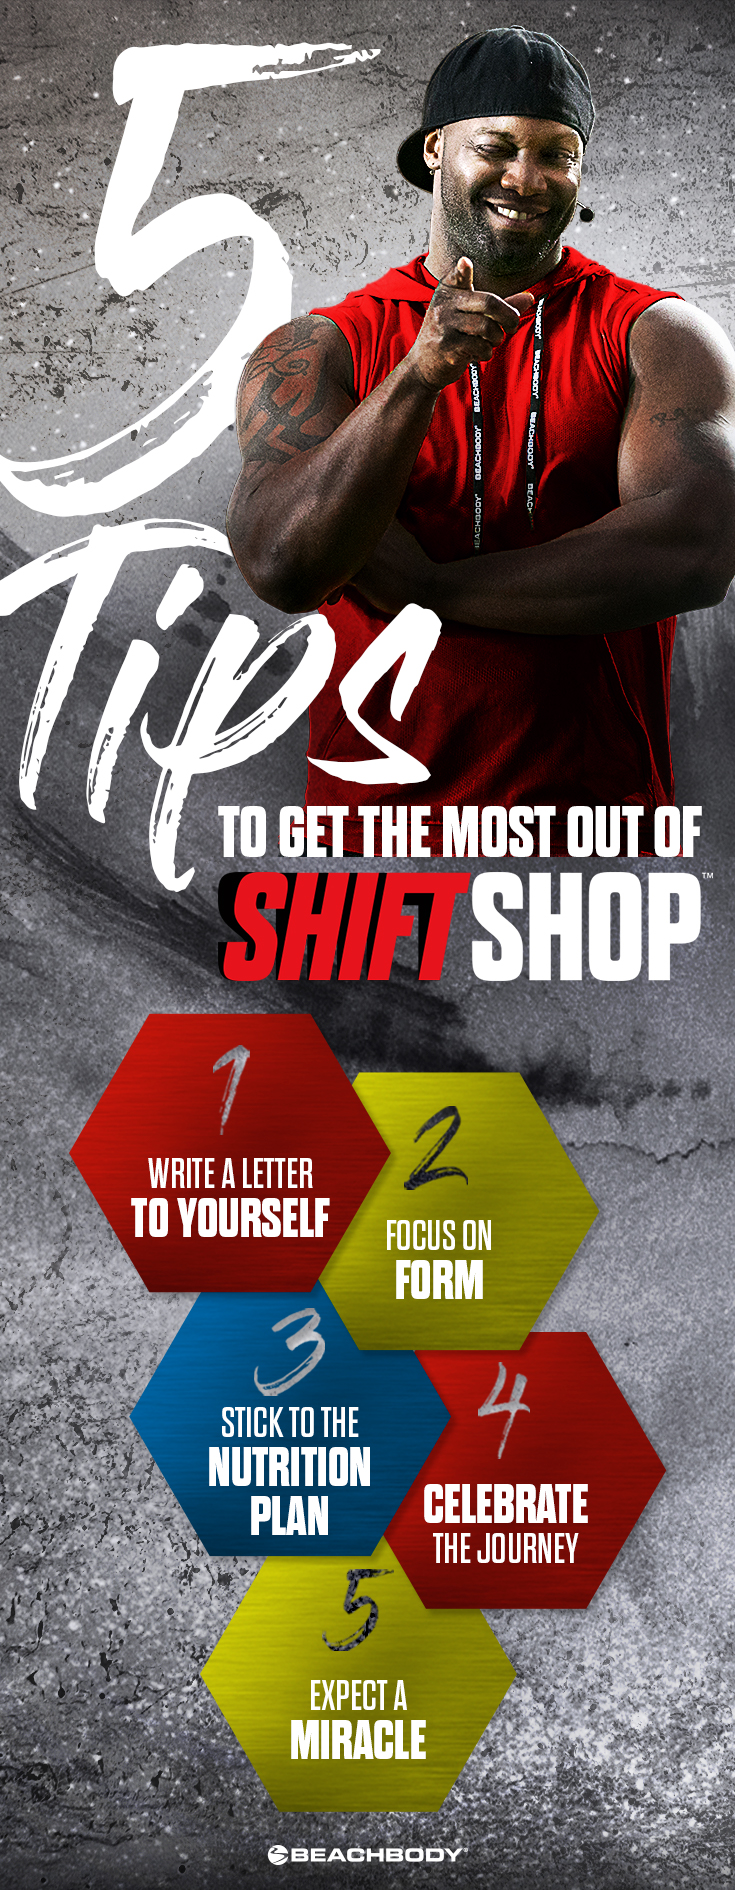 Tips To Get The Most Out Of Shift Shop  The Beachbody Blog